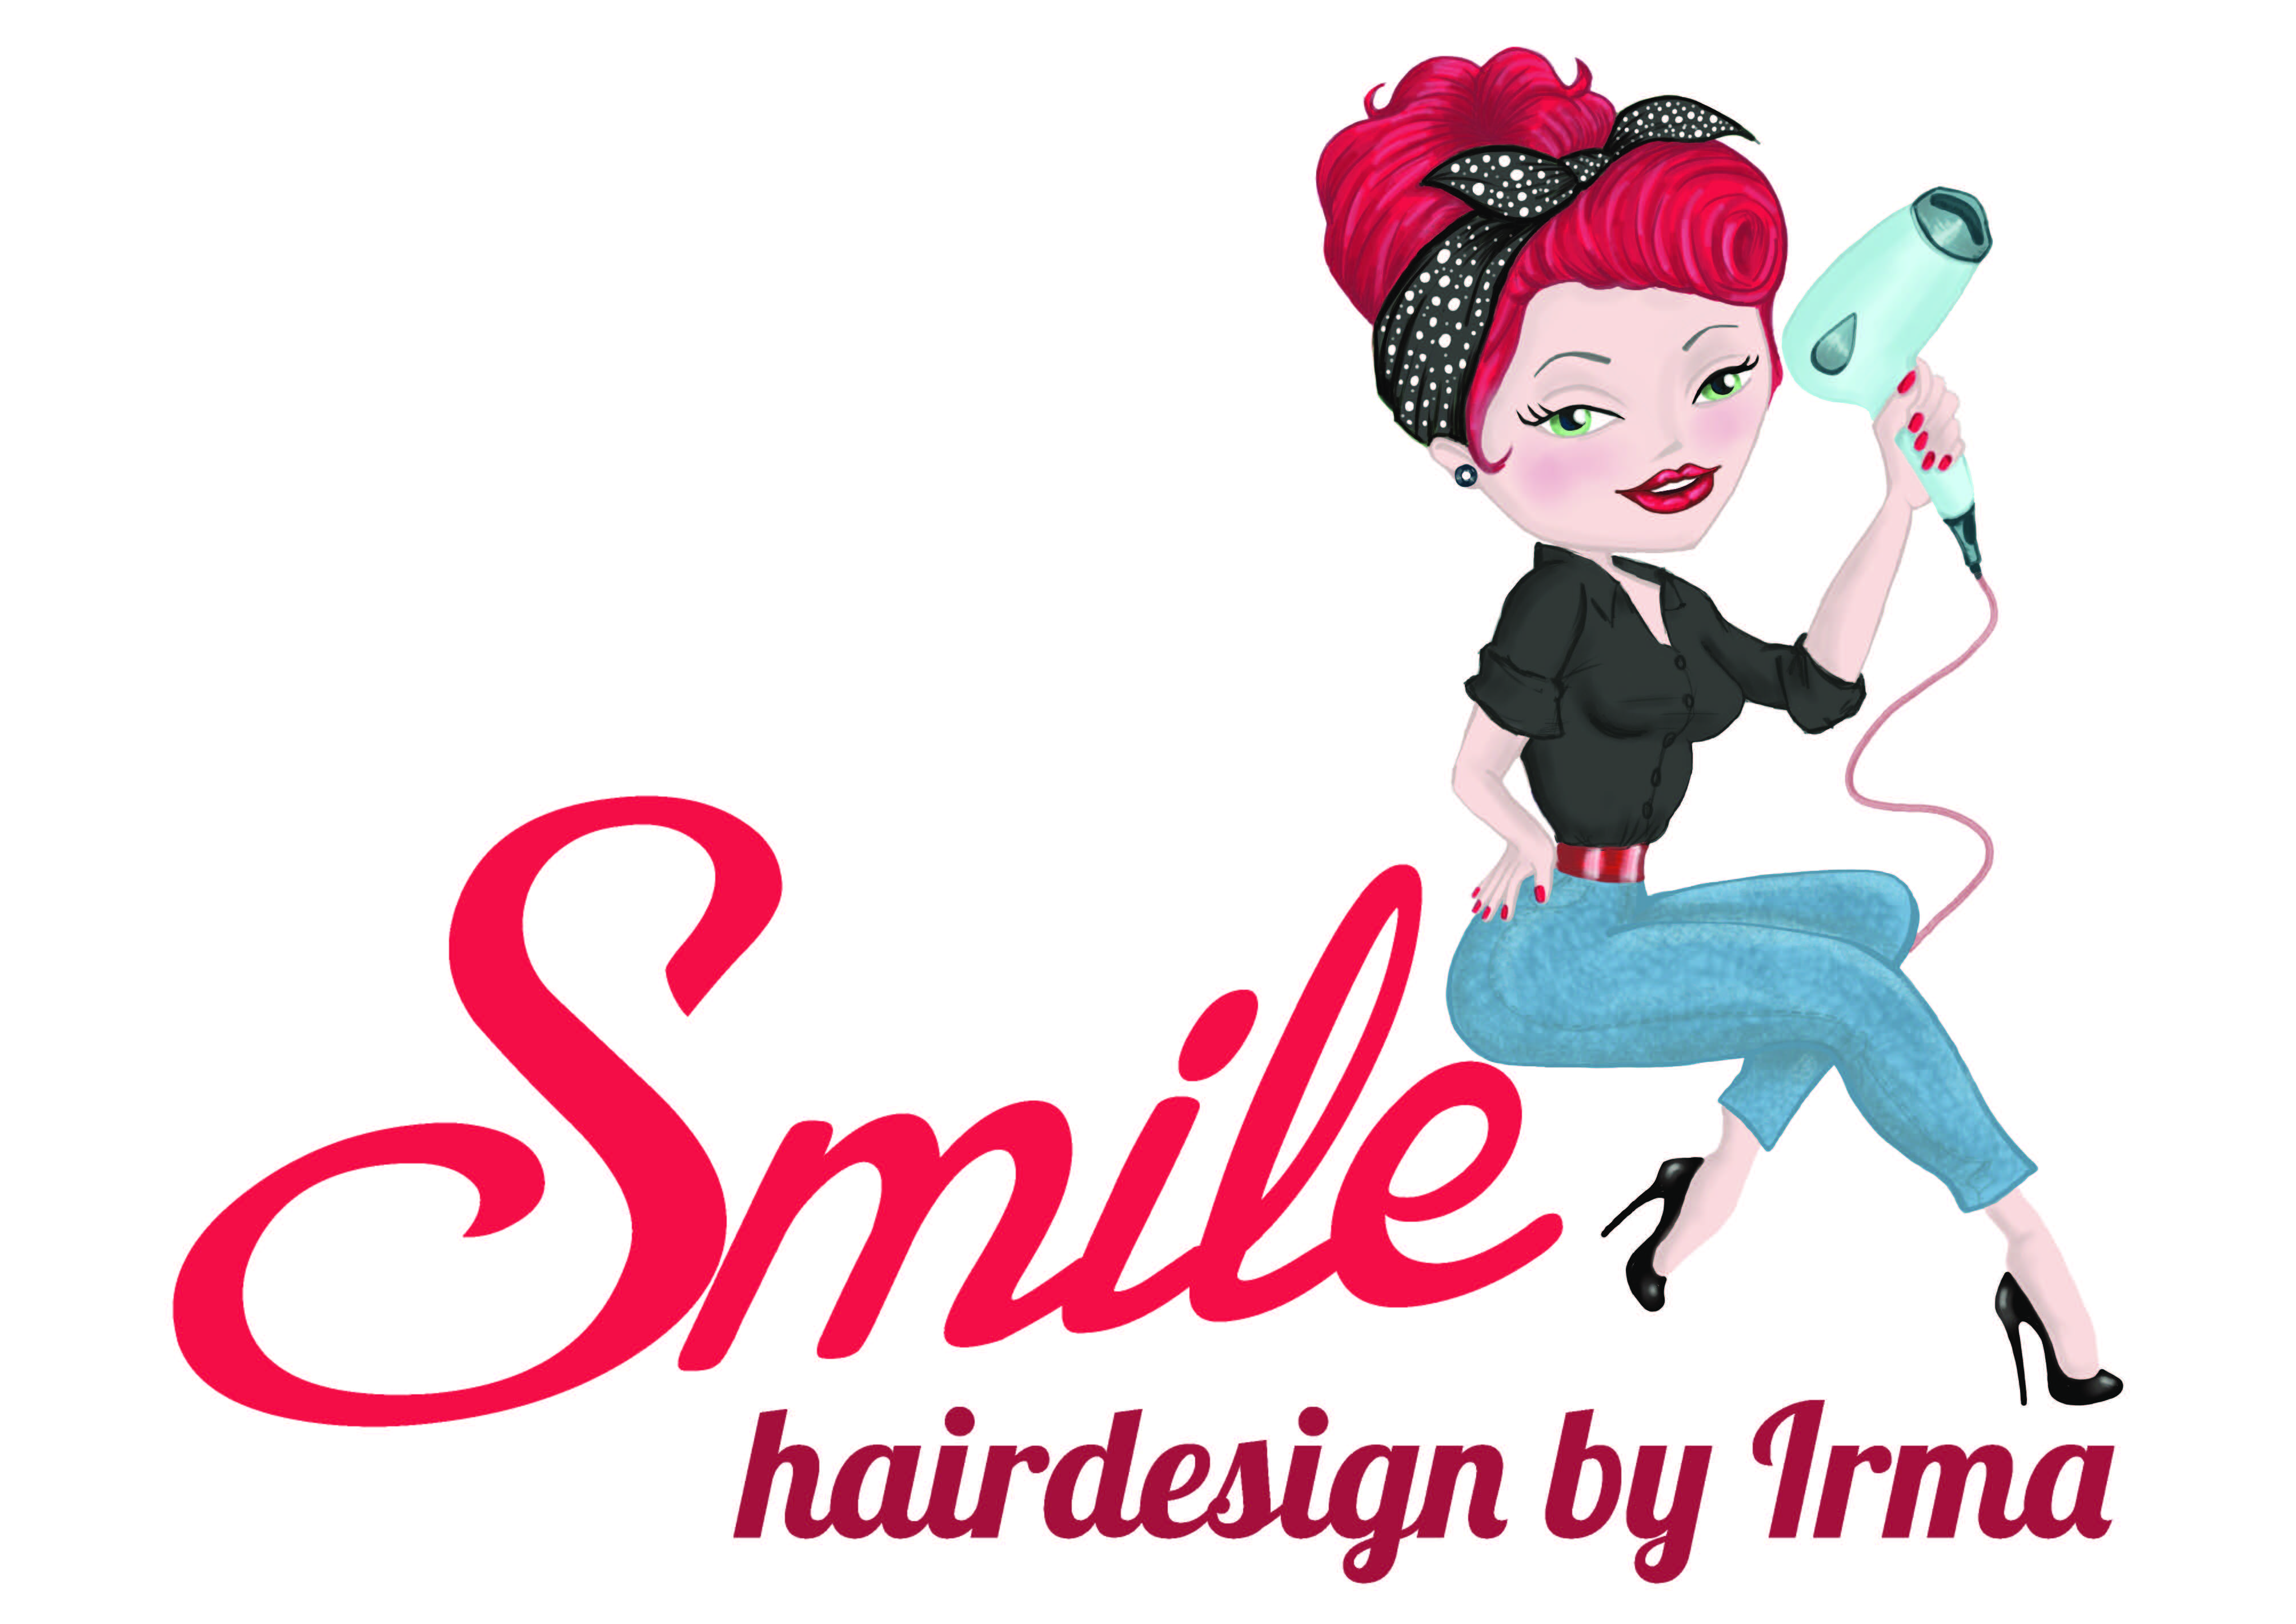 Kapsalon Smile hairdesign Irma